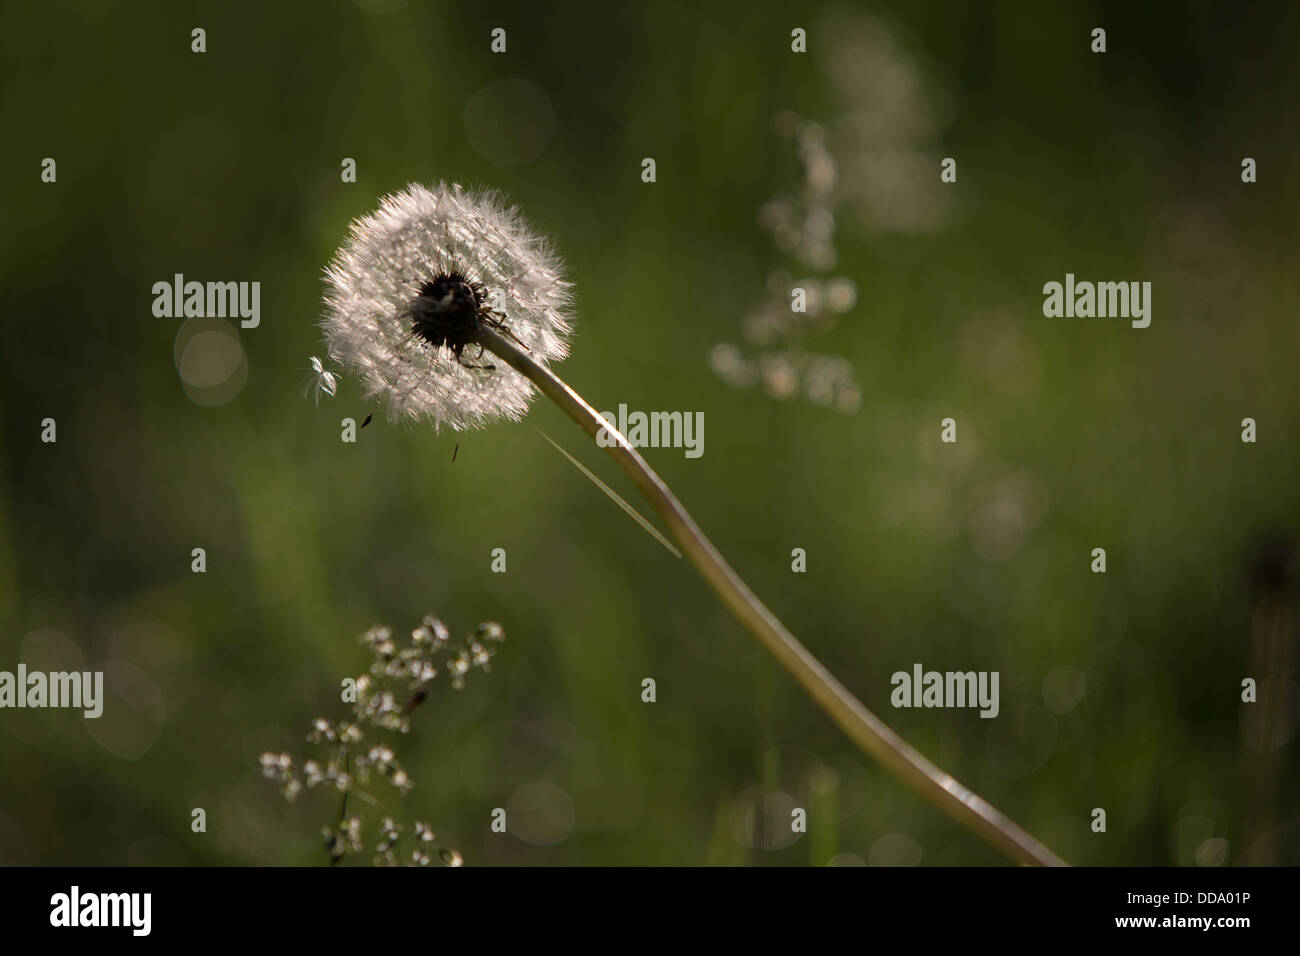 A lonely dandelion that has seen better days... - Stock Image